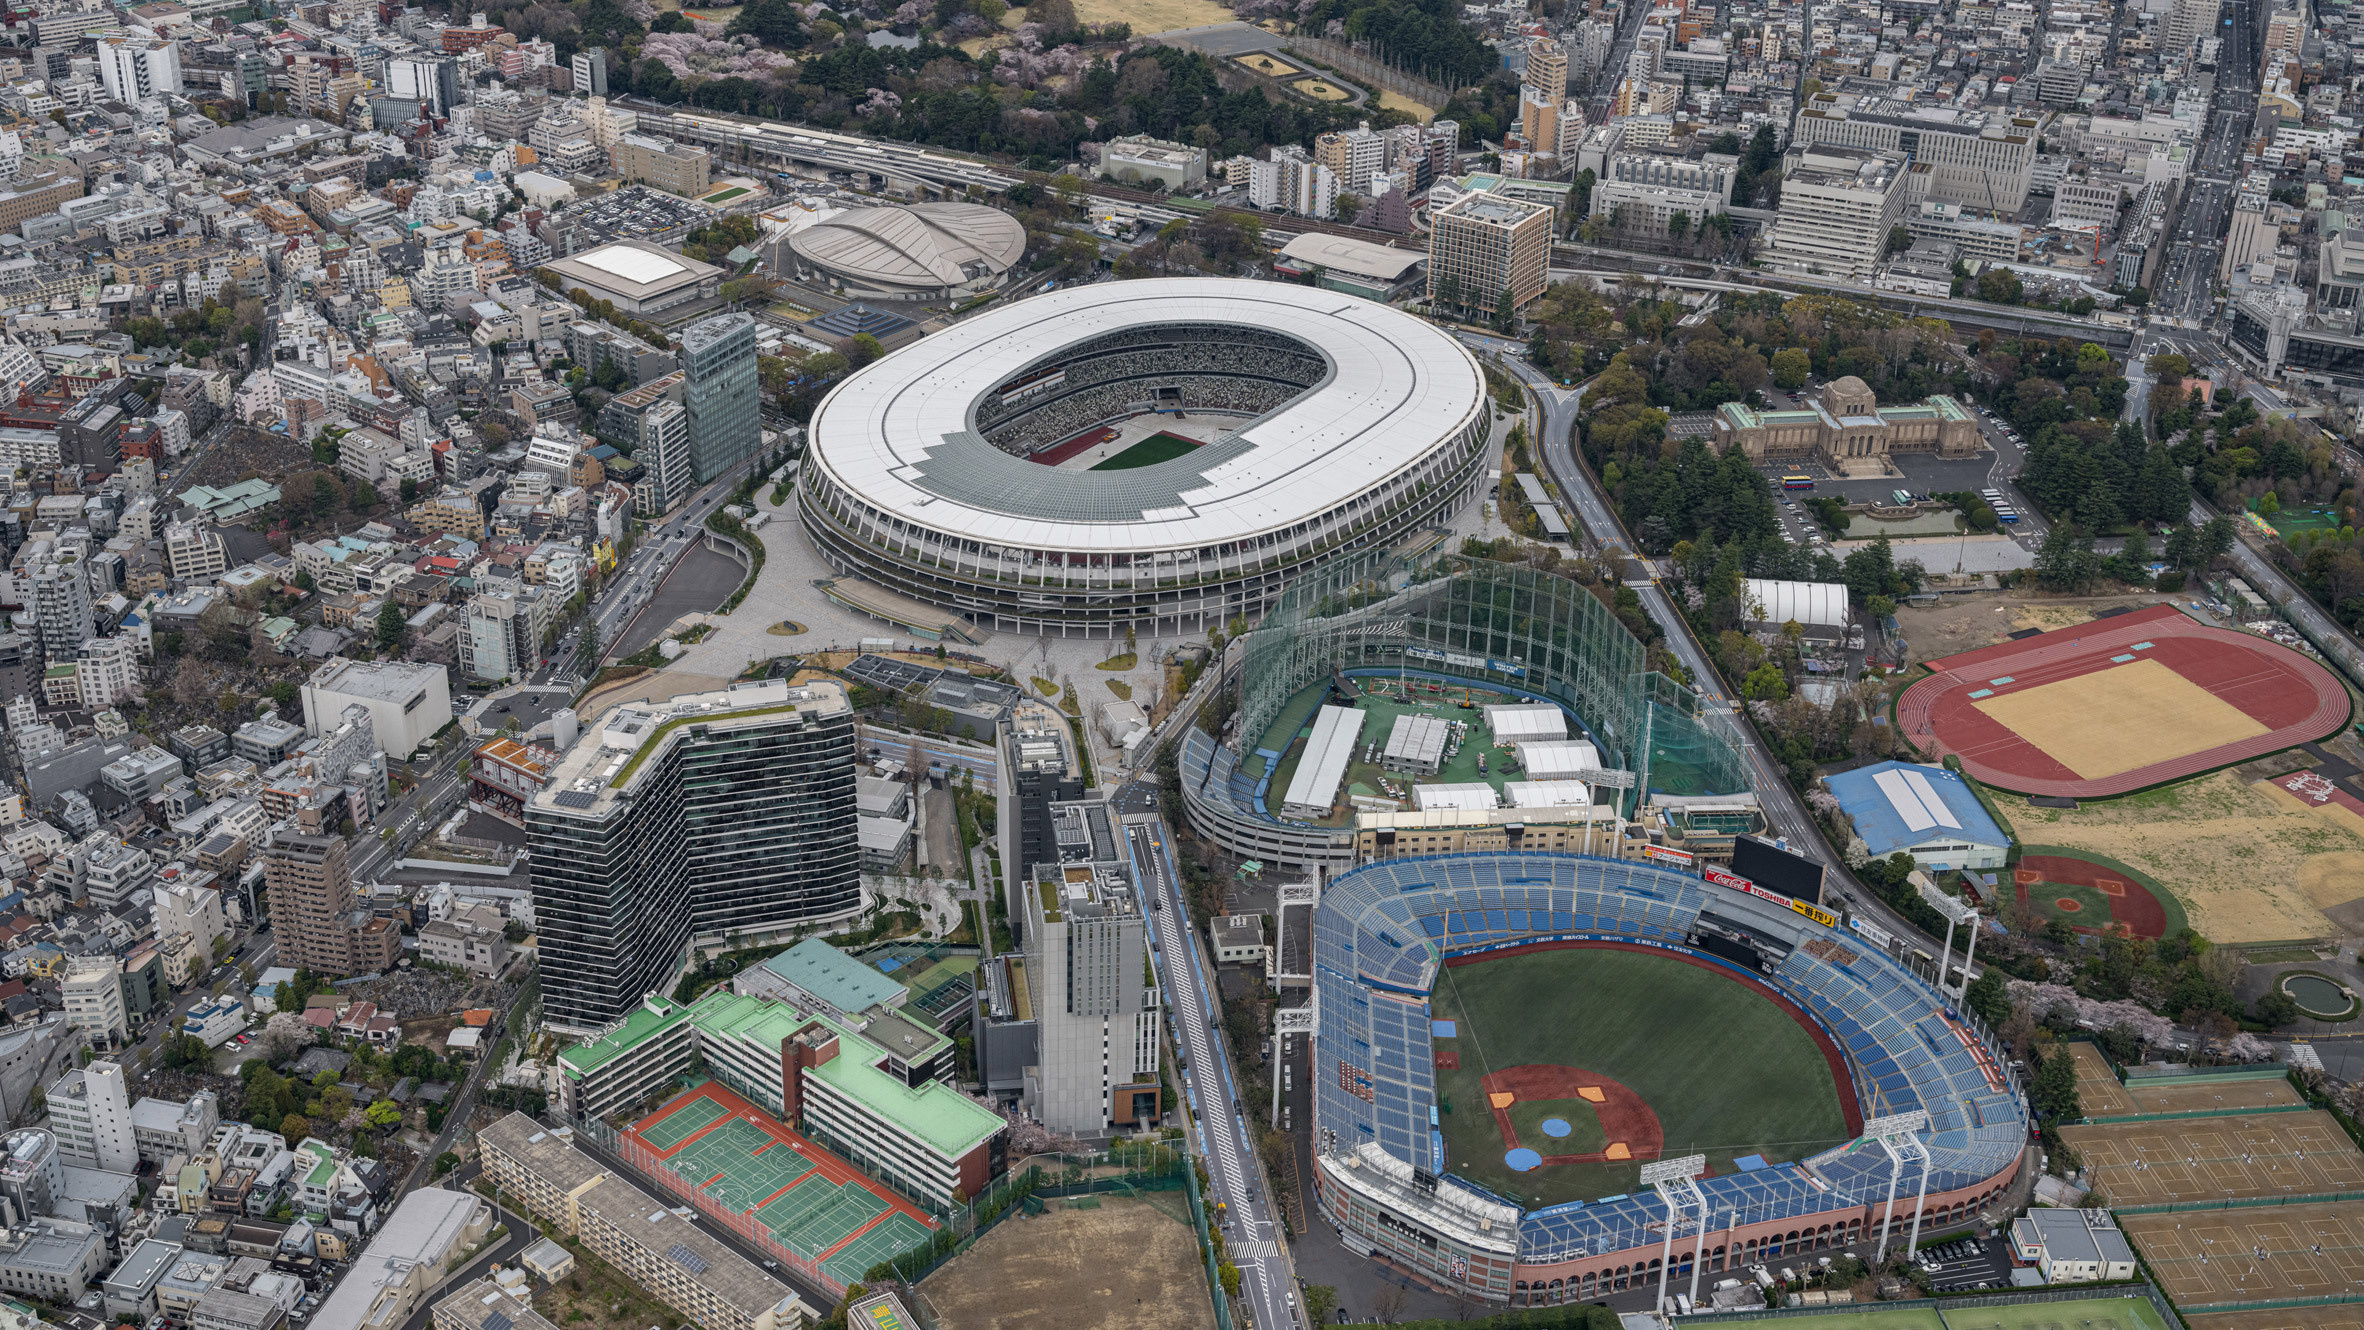 Tokyo Olympic Stadium from above